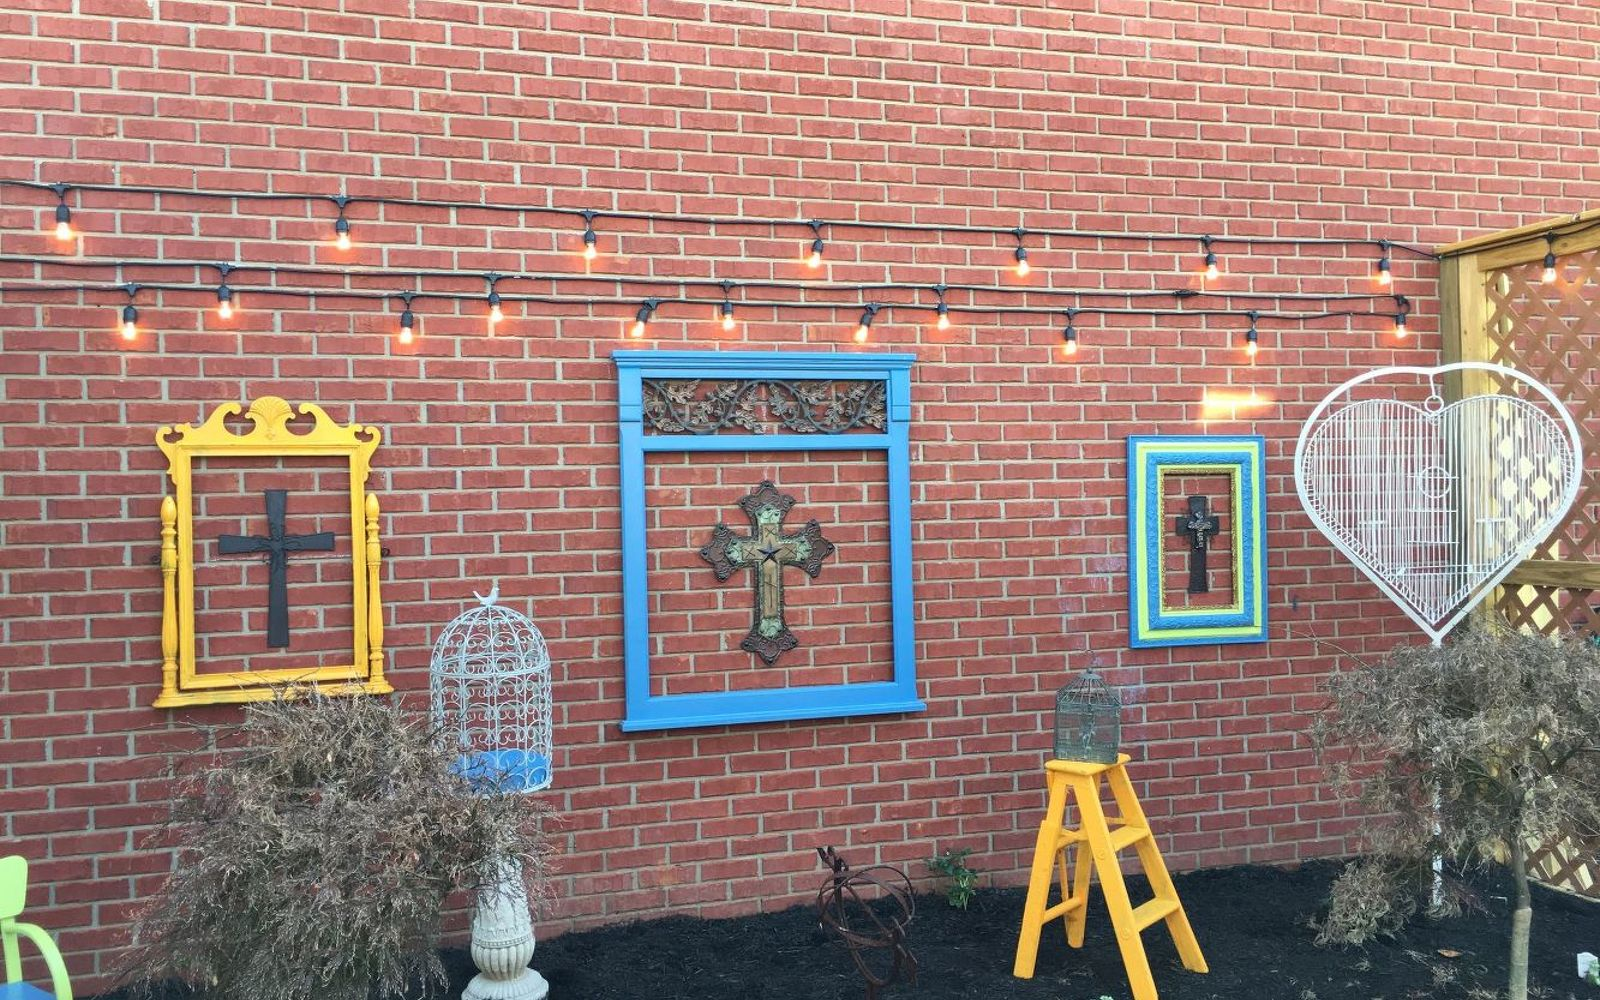 s wait they did what in their backyard , outdoor furniture, outdoor living, Add a colorful prayer garden from found items